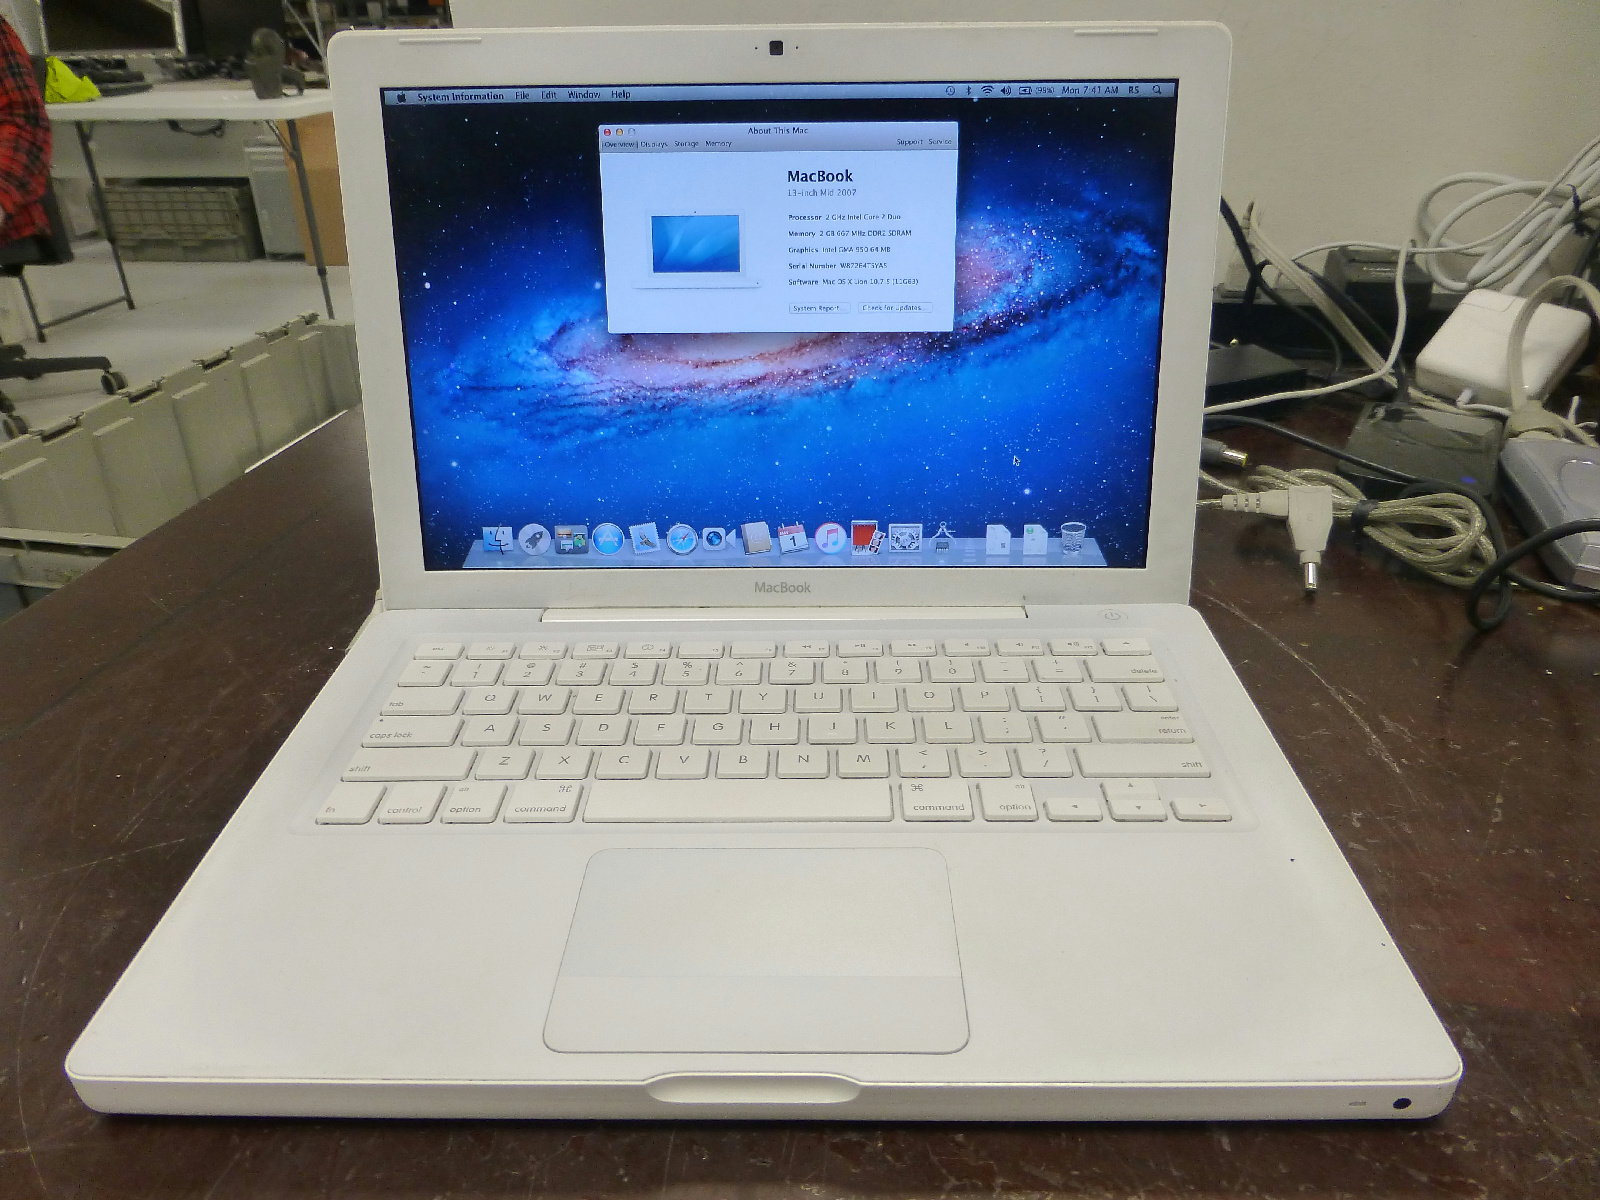 Apple MacBook 2007 A1181 Core2 Duo 2GHz 2GB RAM 320GB HDD OSX Lion | eBay